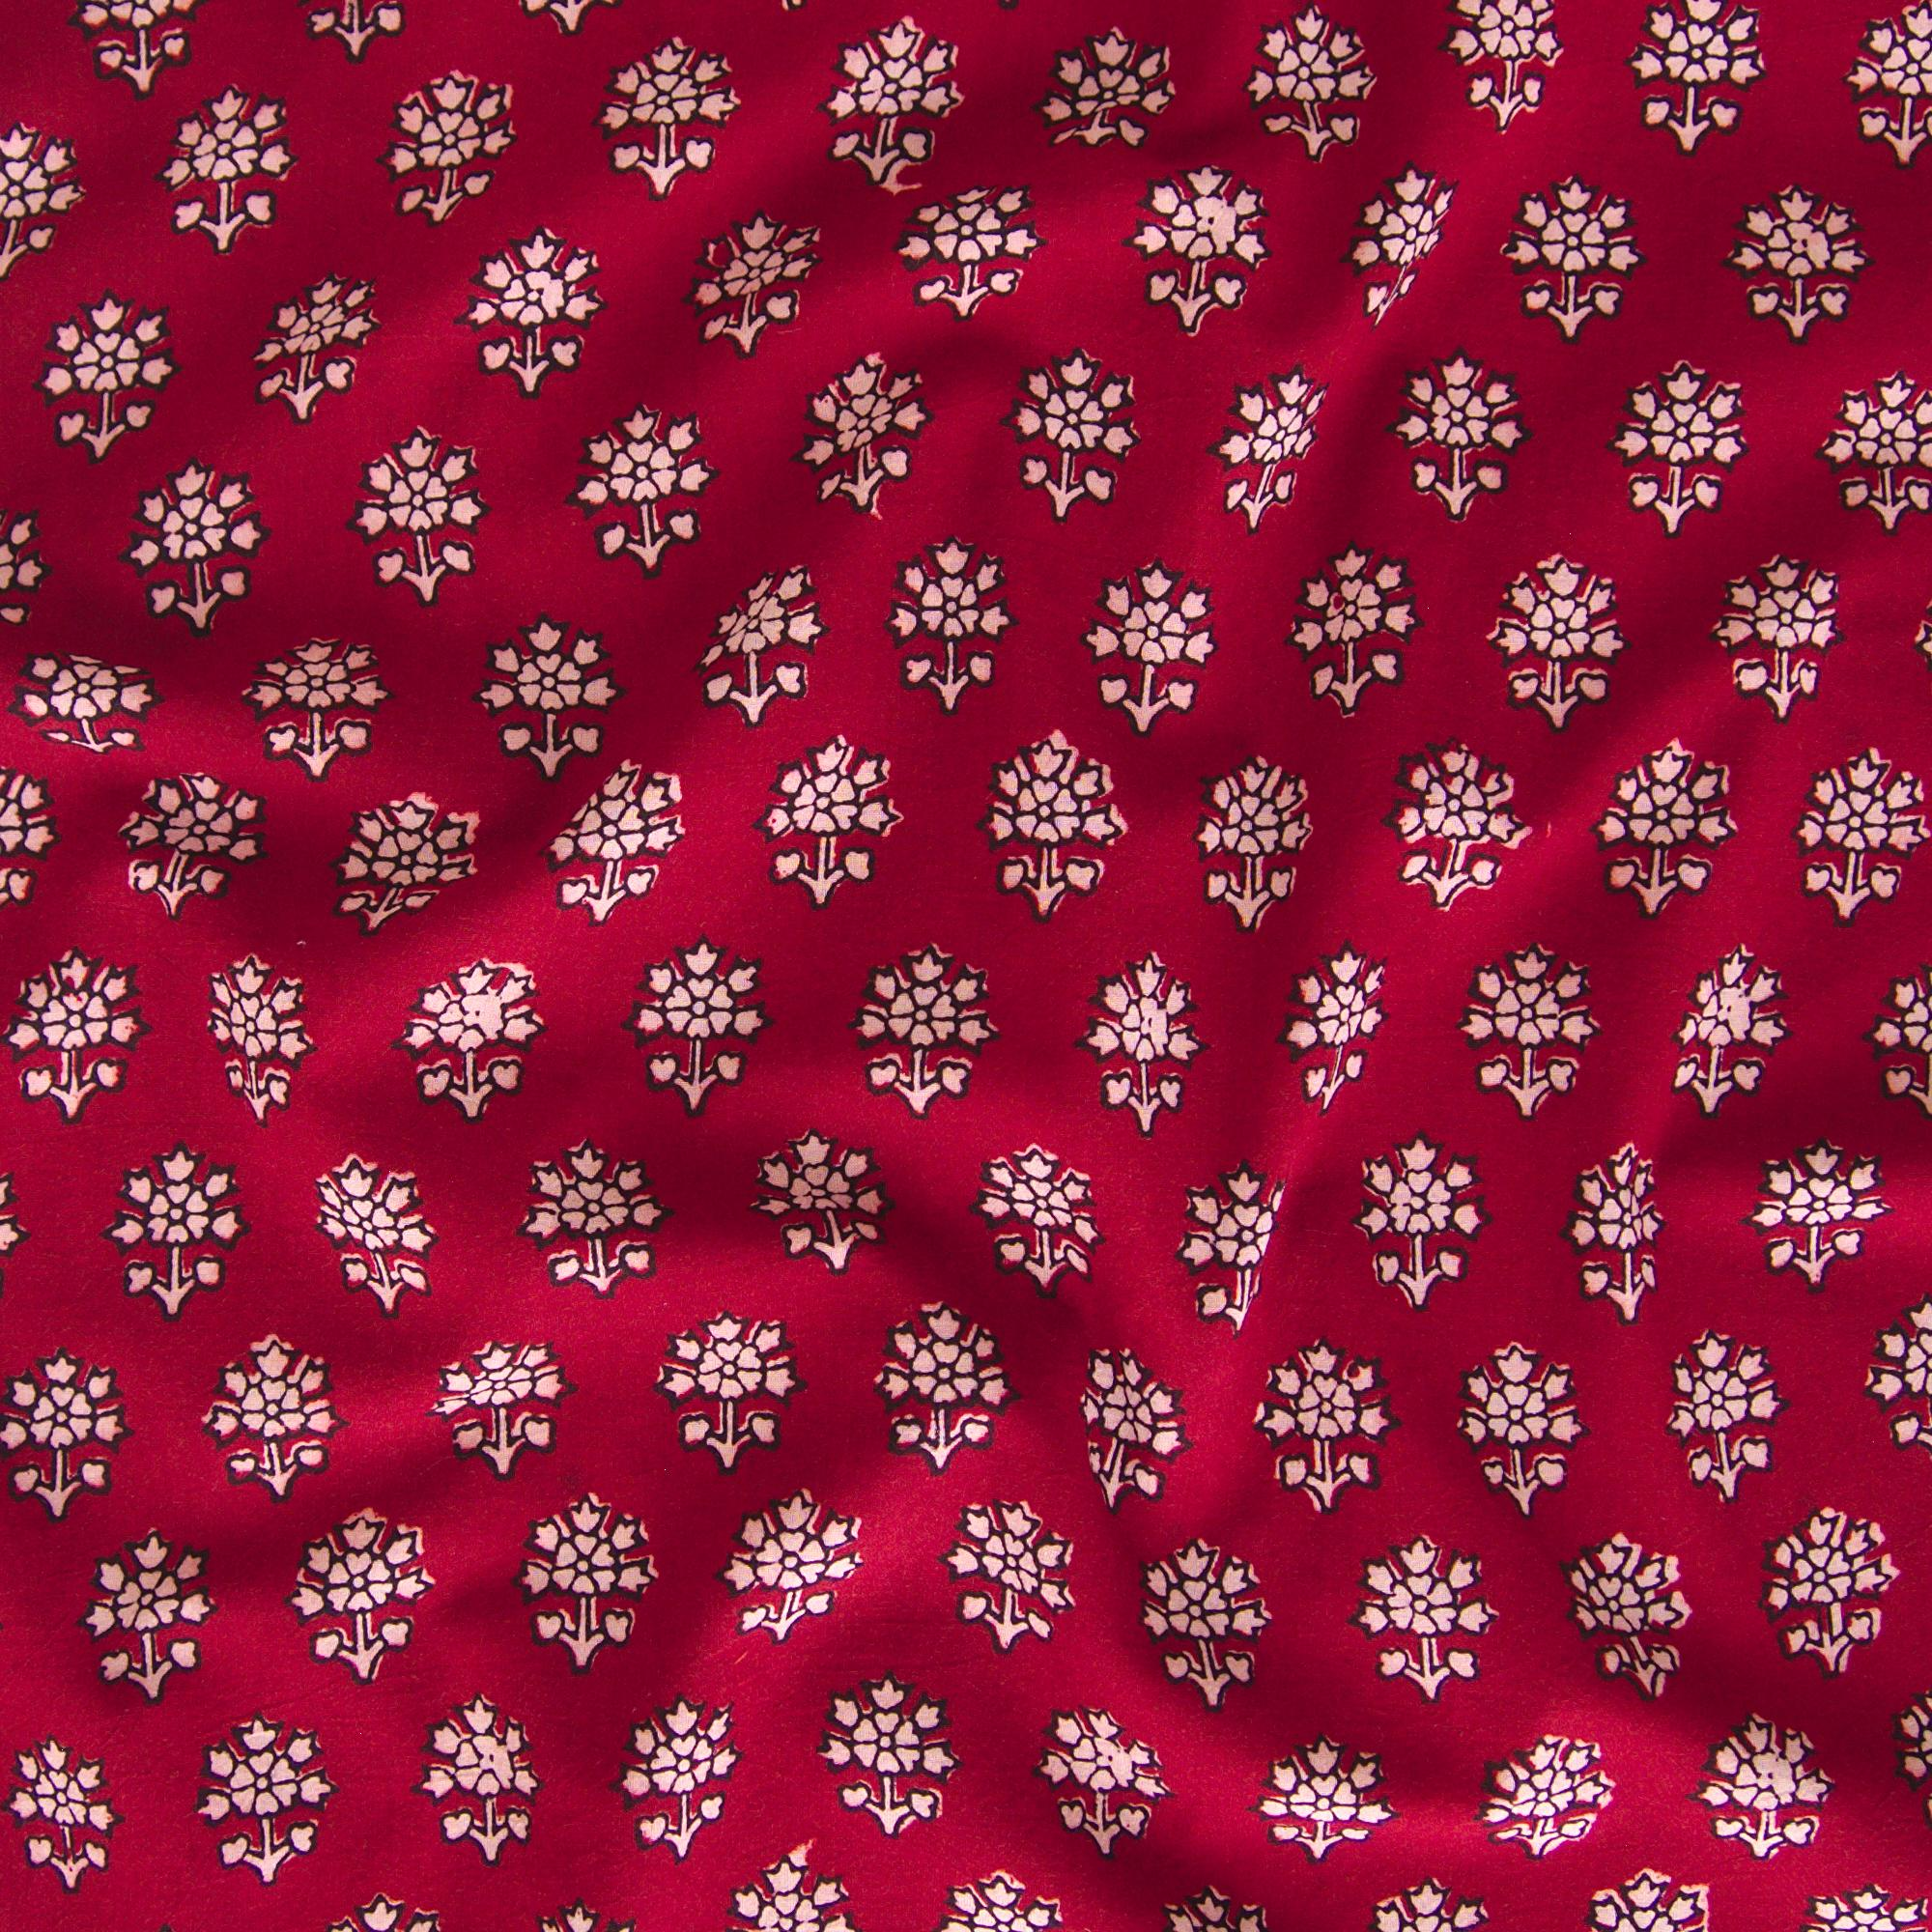 100% Block-Printed Cotton Fabric From India - New Perspective Design - Iron Rust Black & Alizarin Red Dyes - Contrast - Live